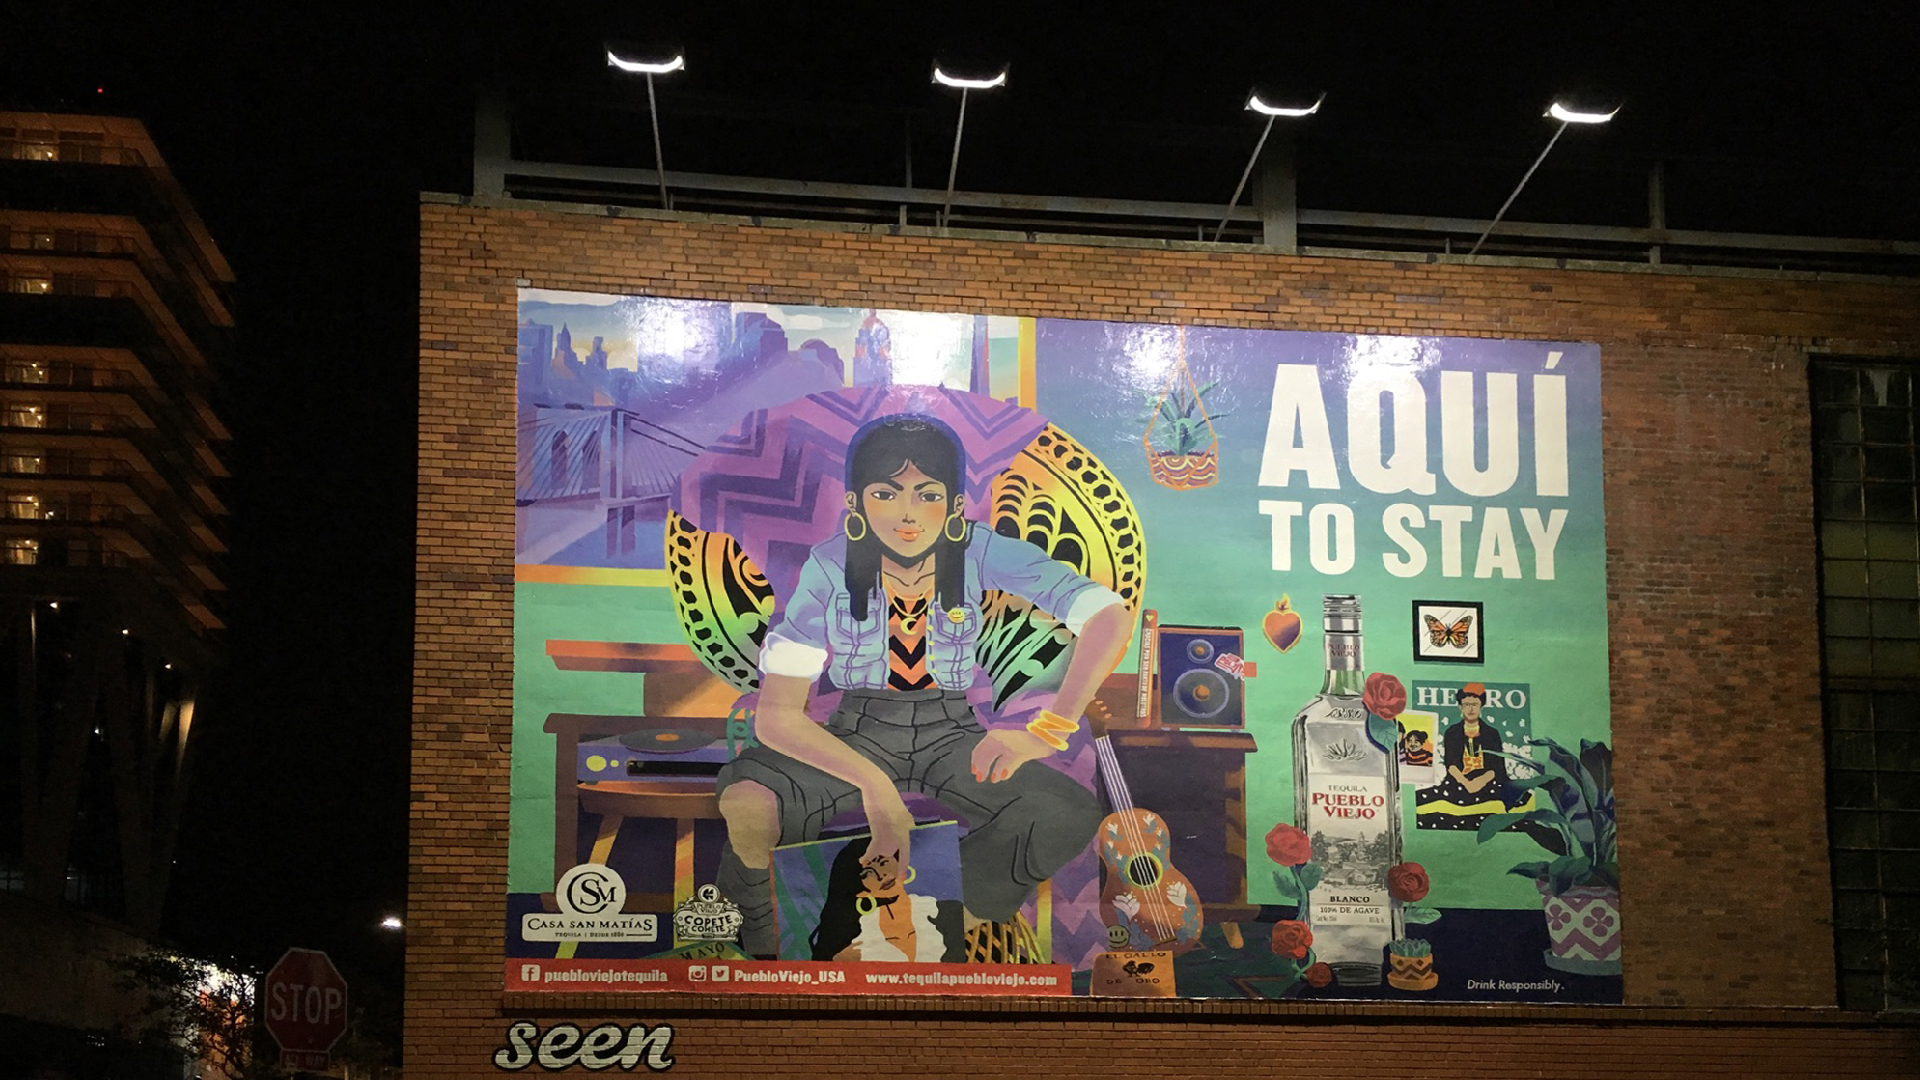 Billboard advertising campaign tequila brand